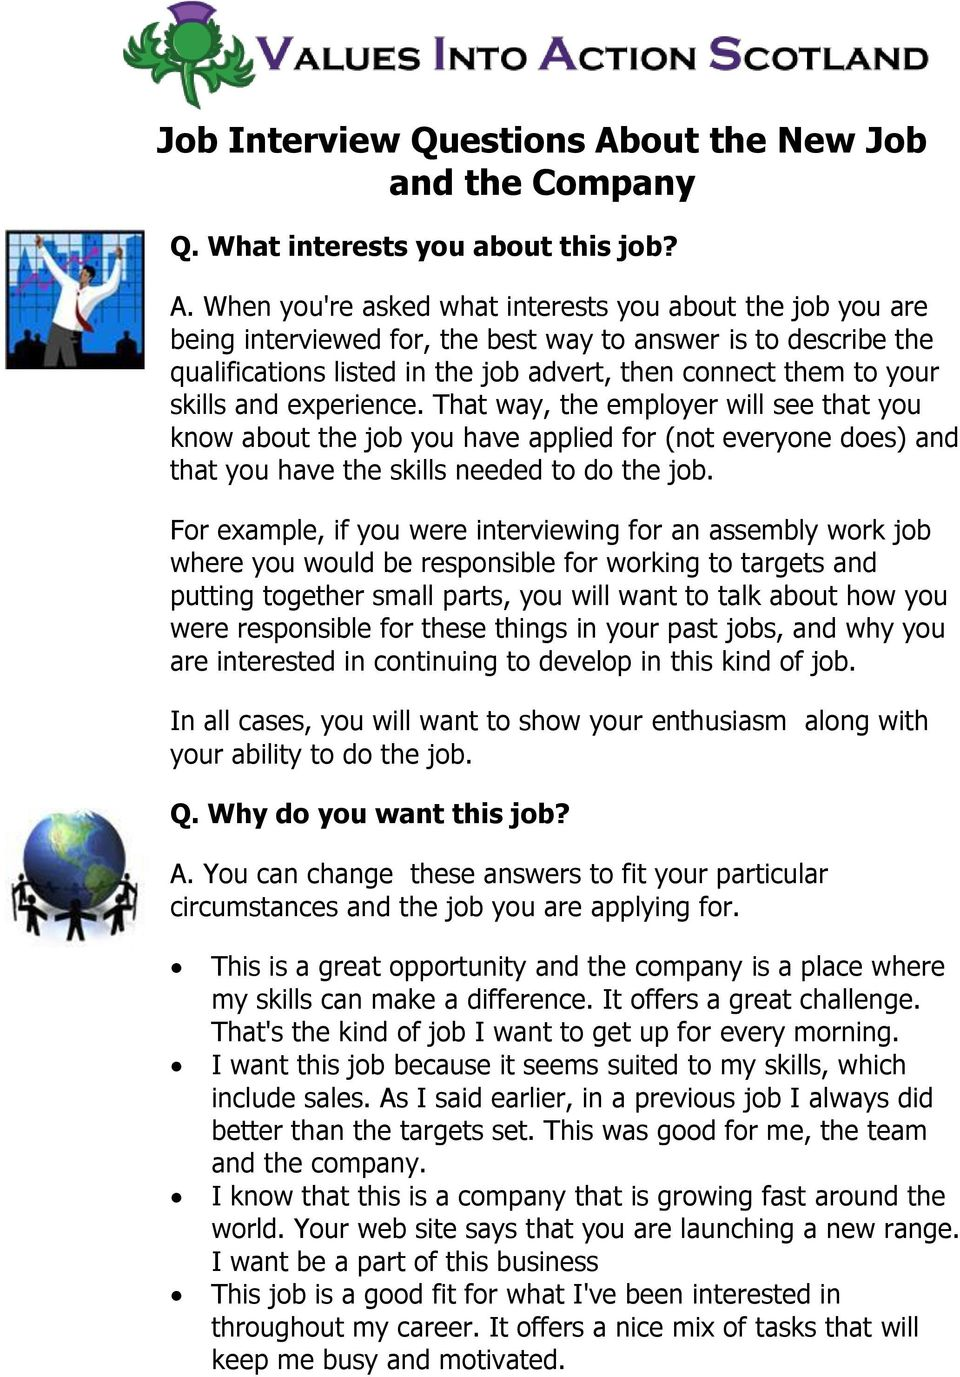 When you're asked what interests you about the job you are being interviewed for, the best way to answer is to describe the qualifications listed in the job advert, then connect them to your skills